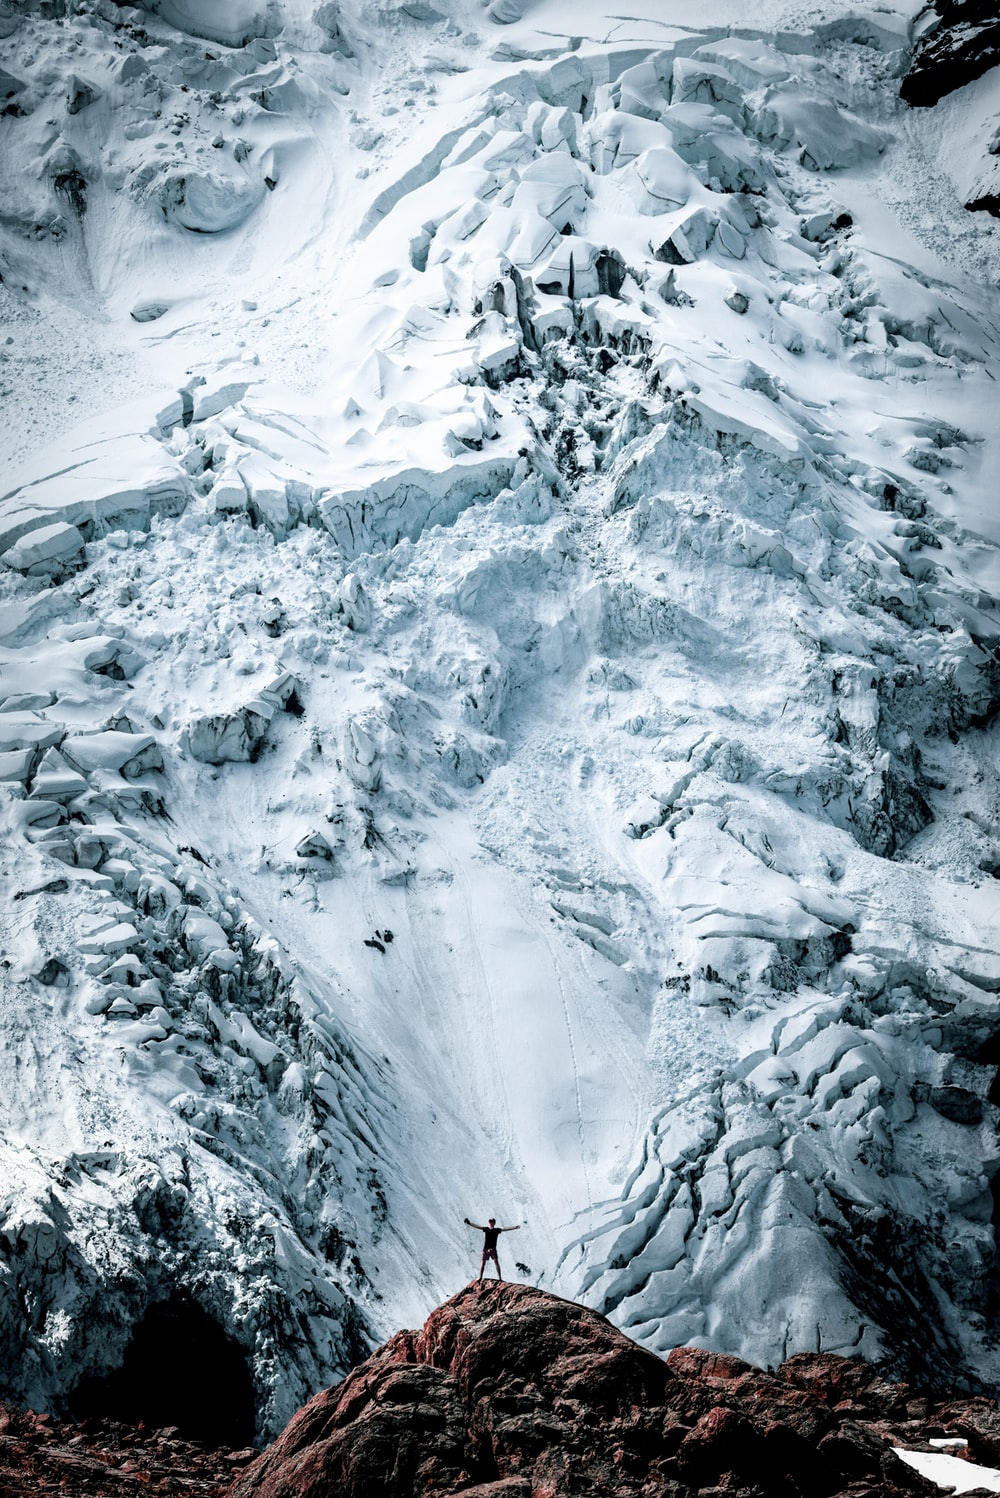 person standing on rock front of snow-capped mountain in nature photography